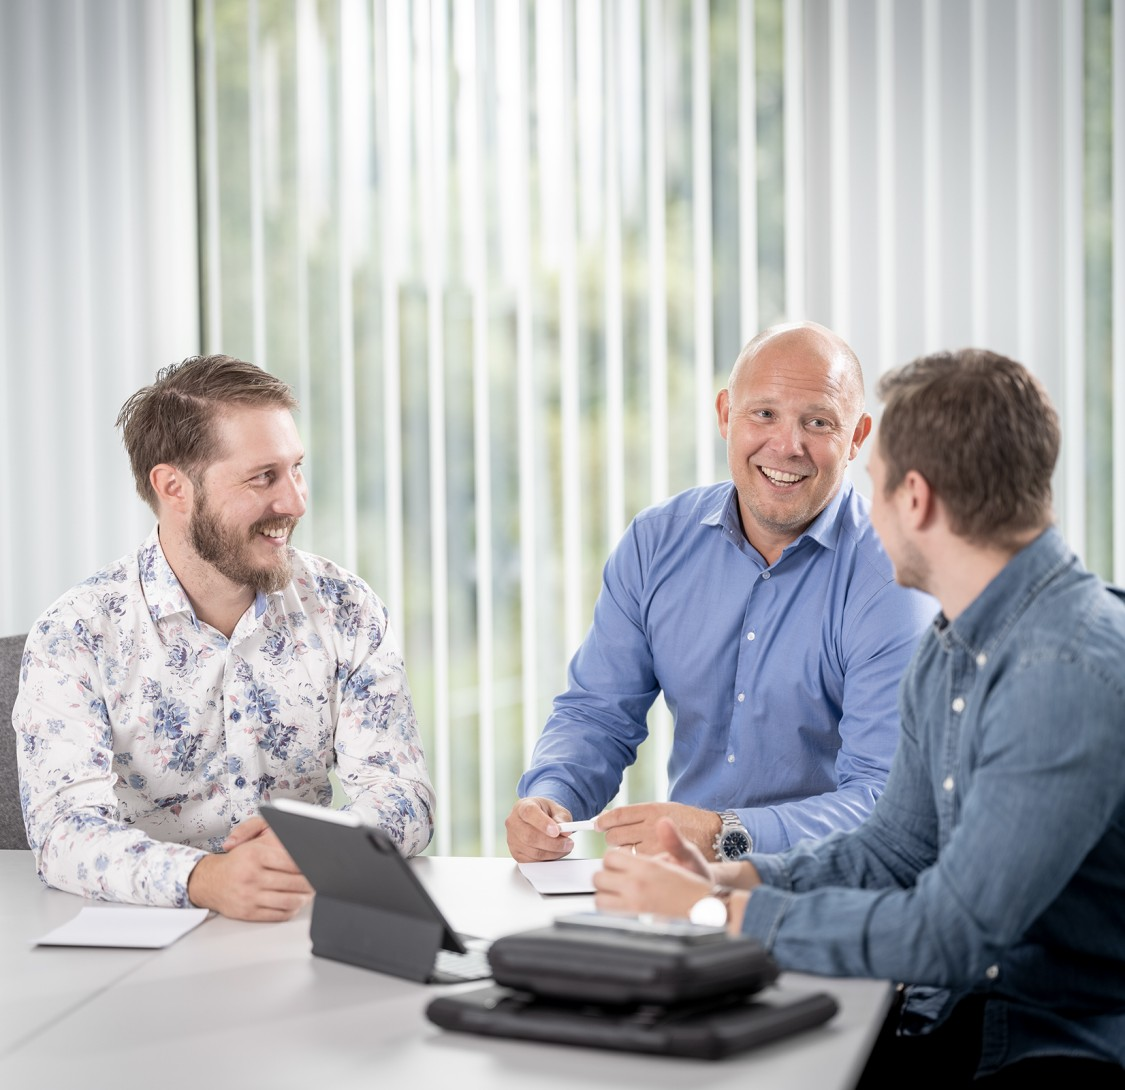 3 people in conference room